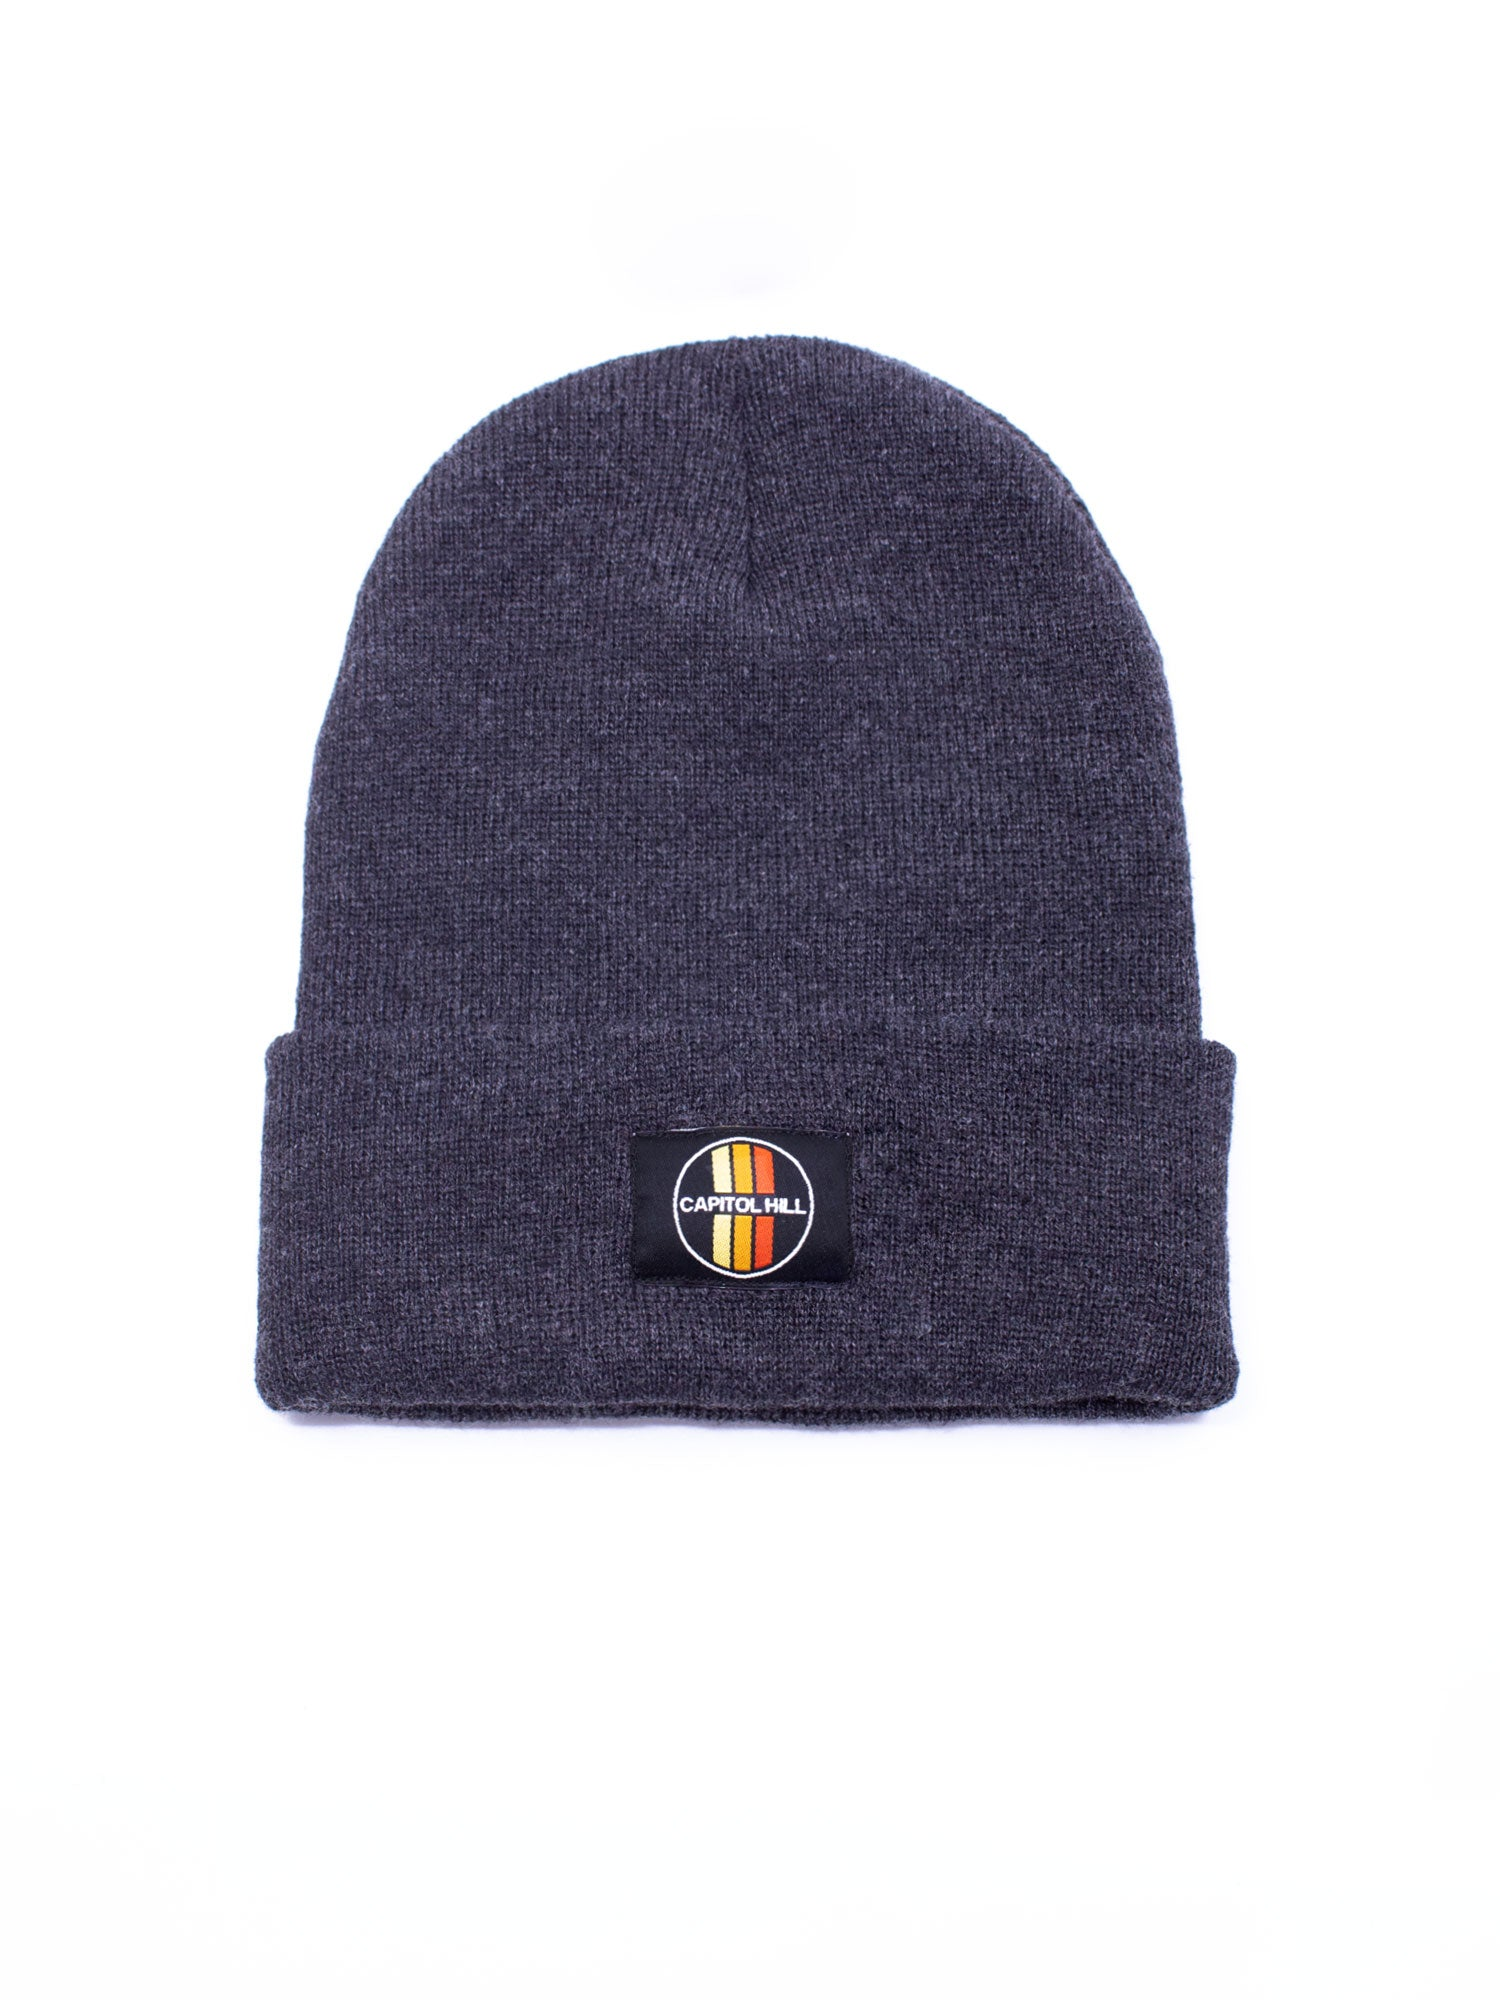 Acme Local Capitol Hill Vertical Stripes Charcoal Beanie